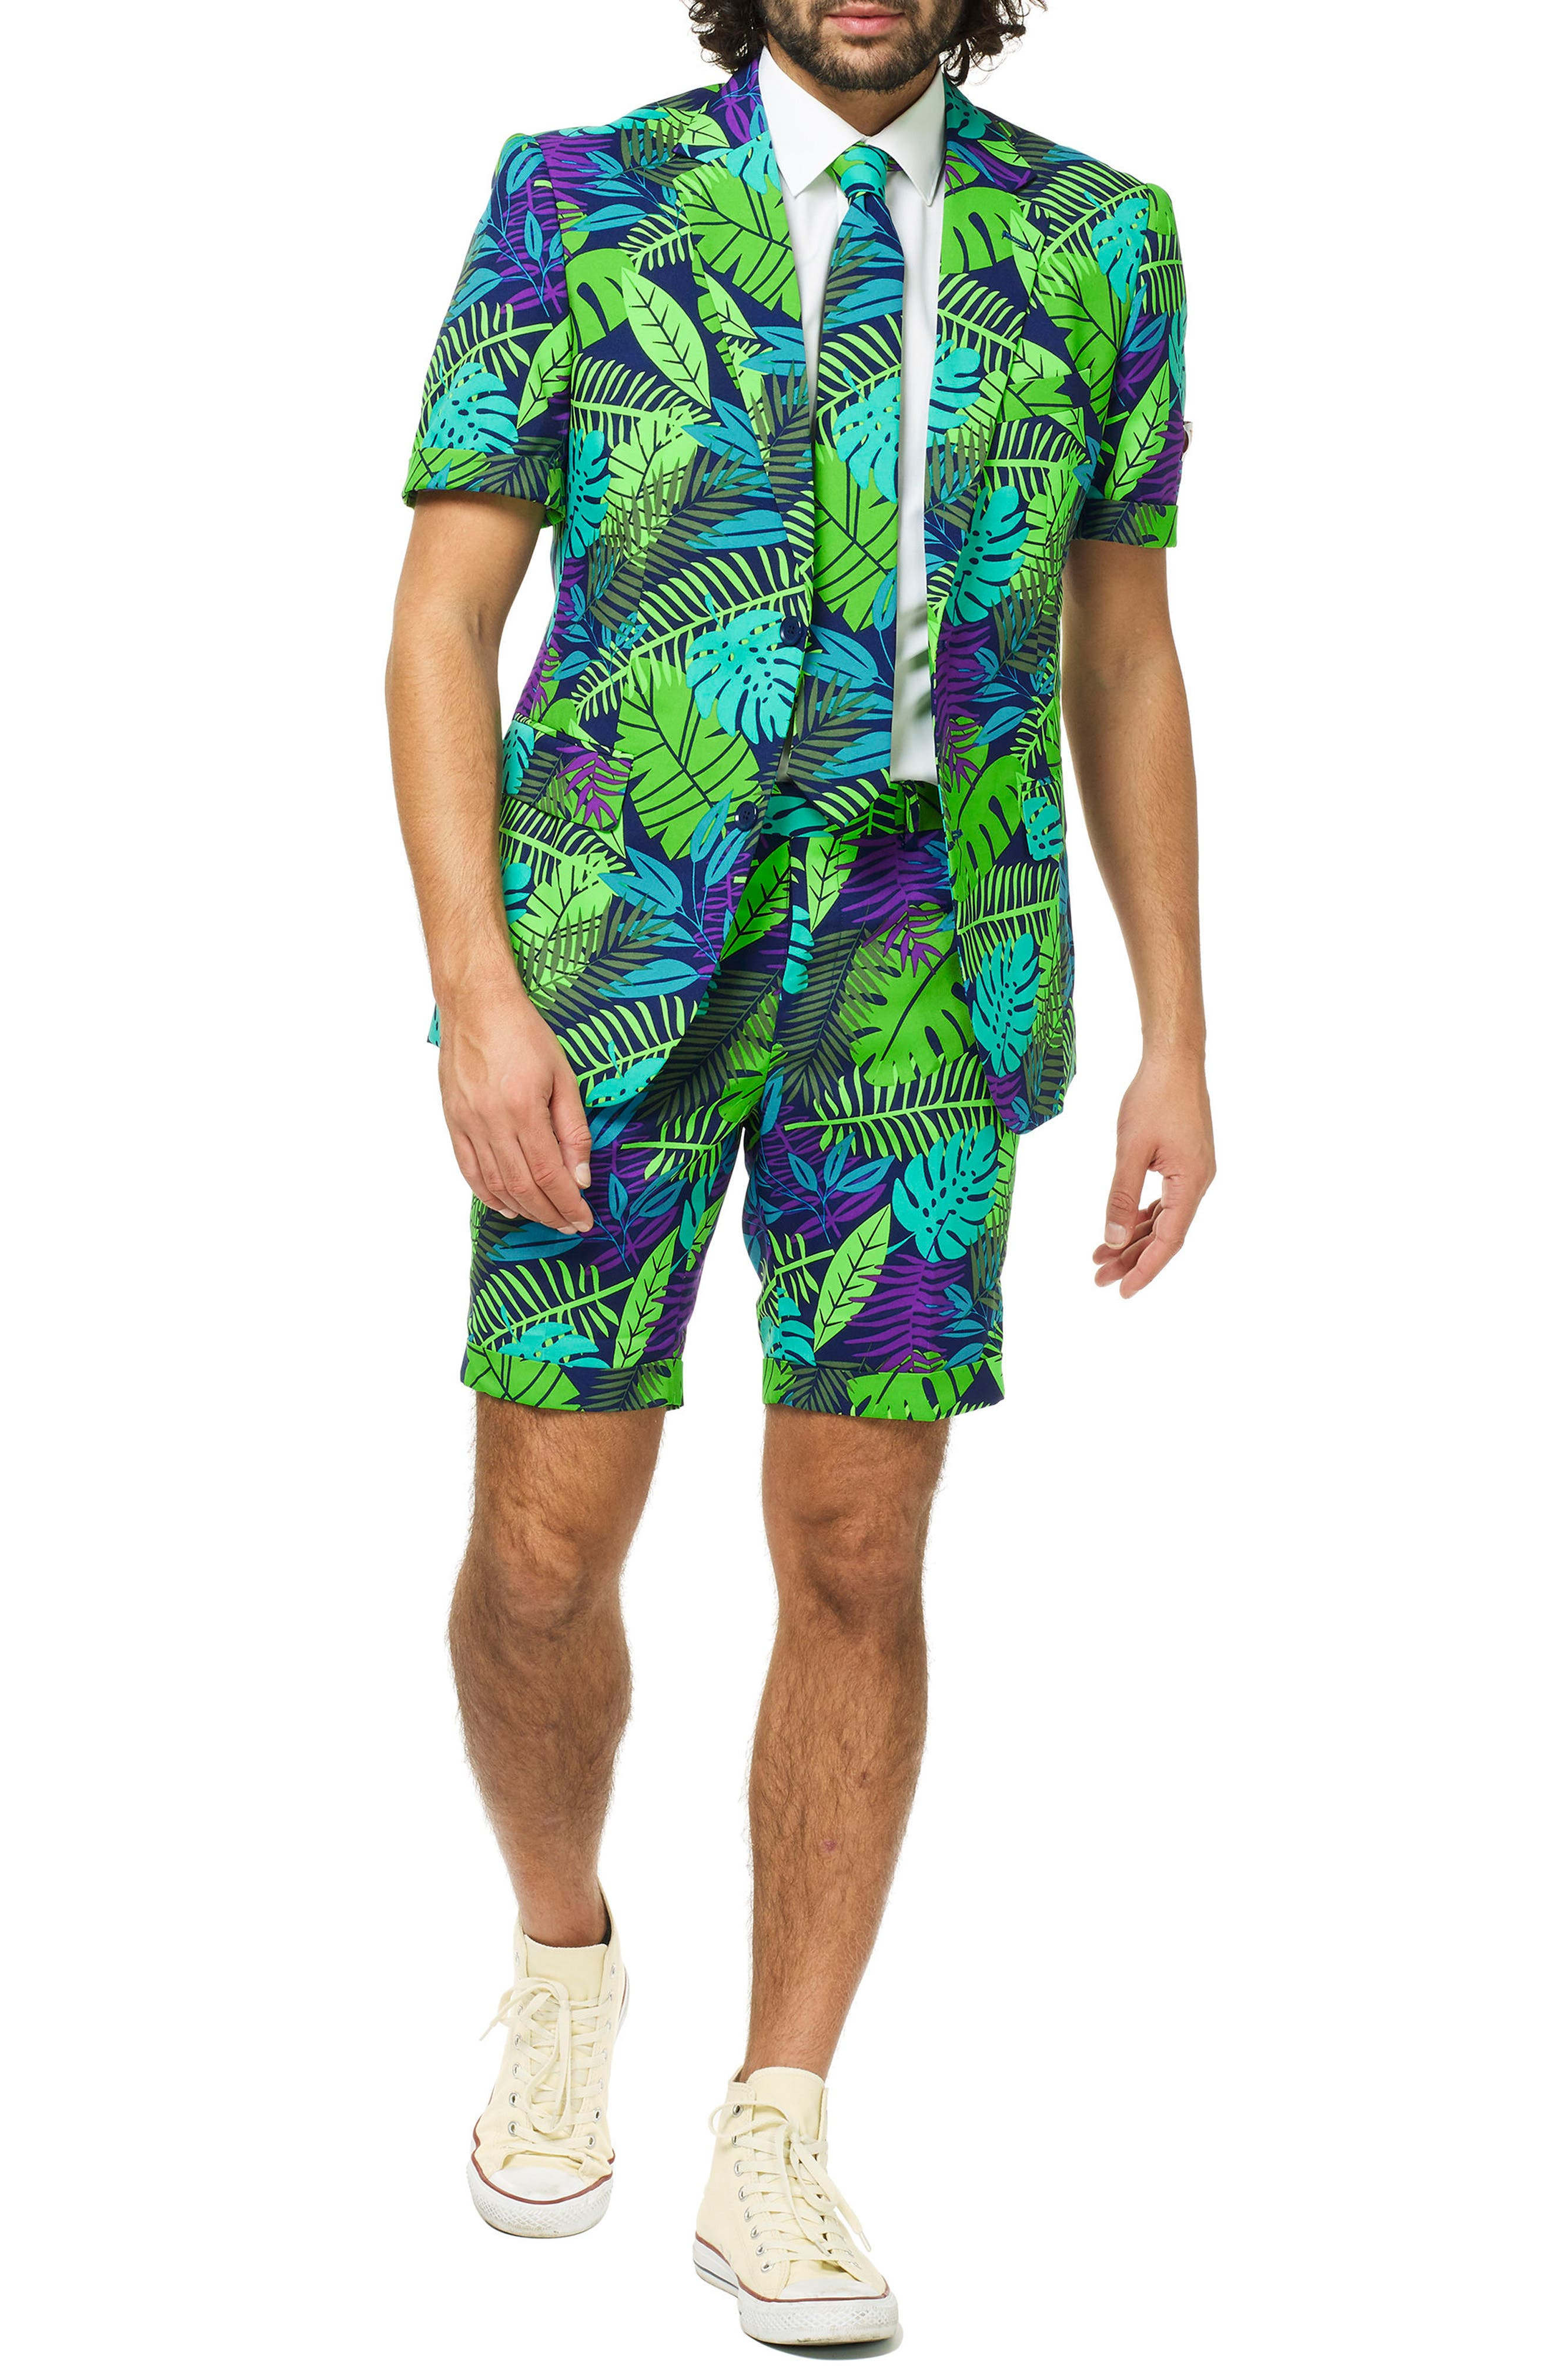 Juicy Jungle Trim Fit Two-Piece Short Suit with Tie,                             Main thumbnail 1, color,                             Miscellaneous